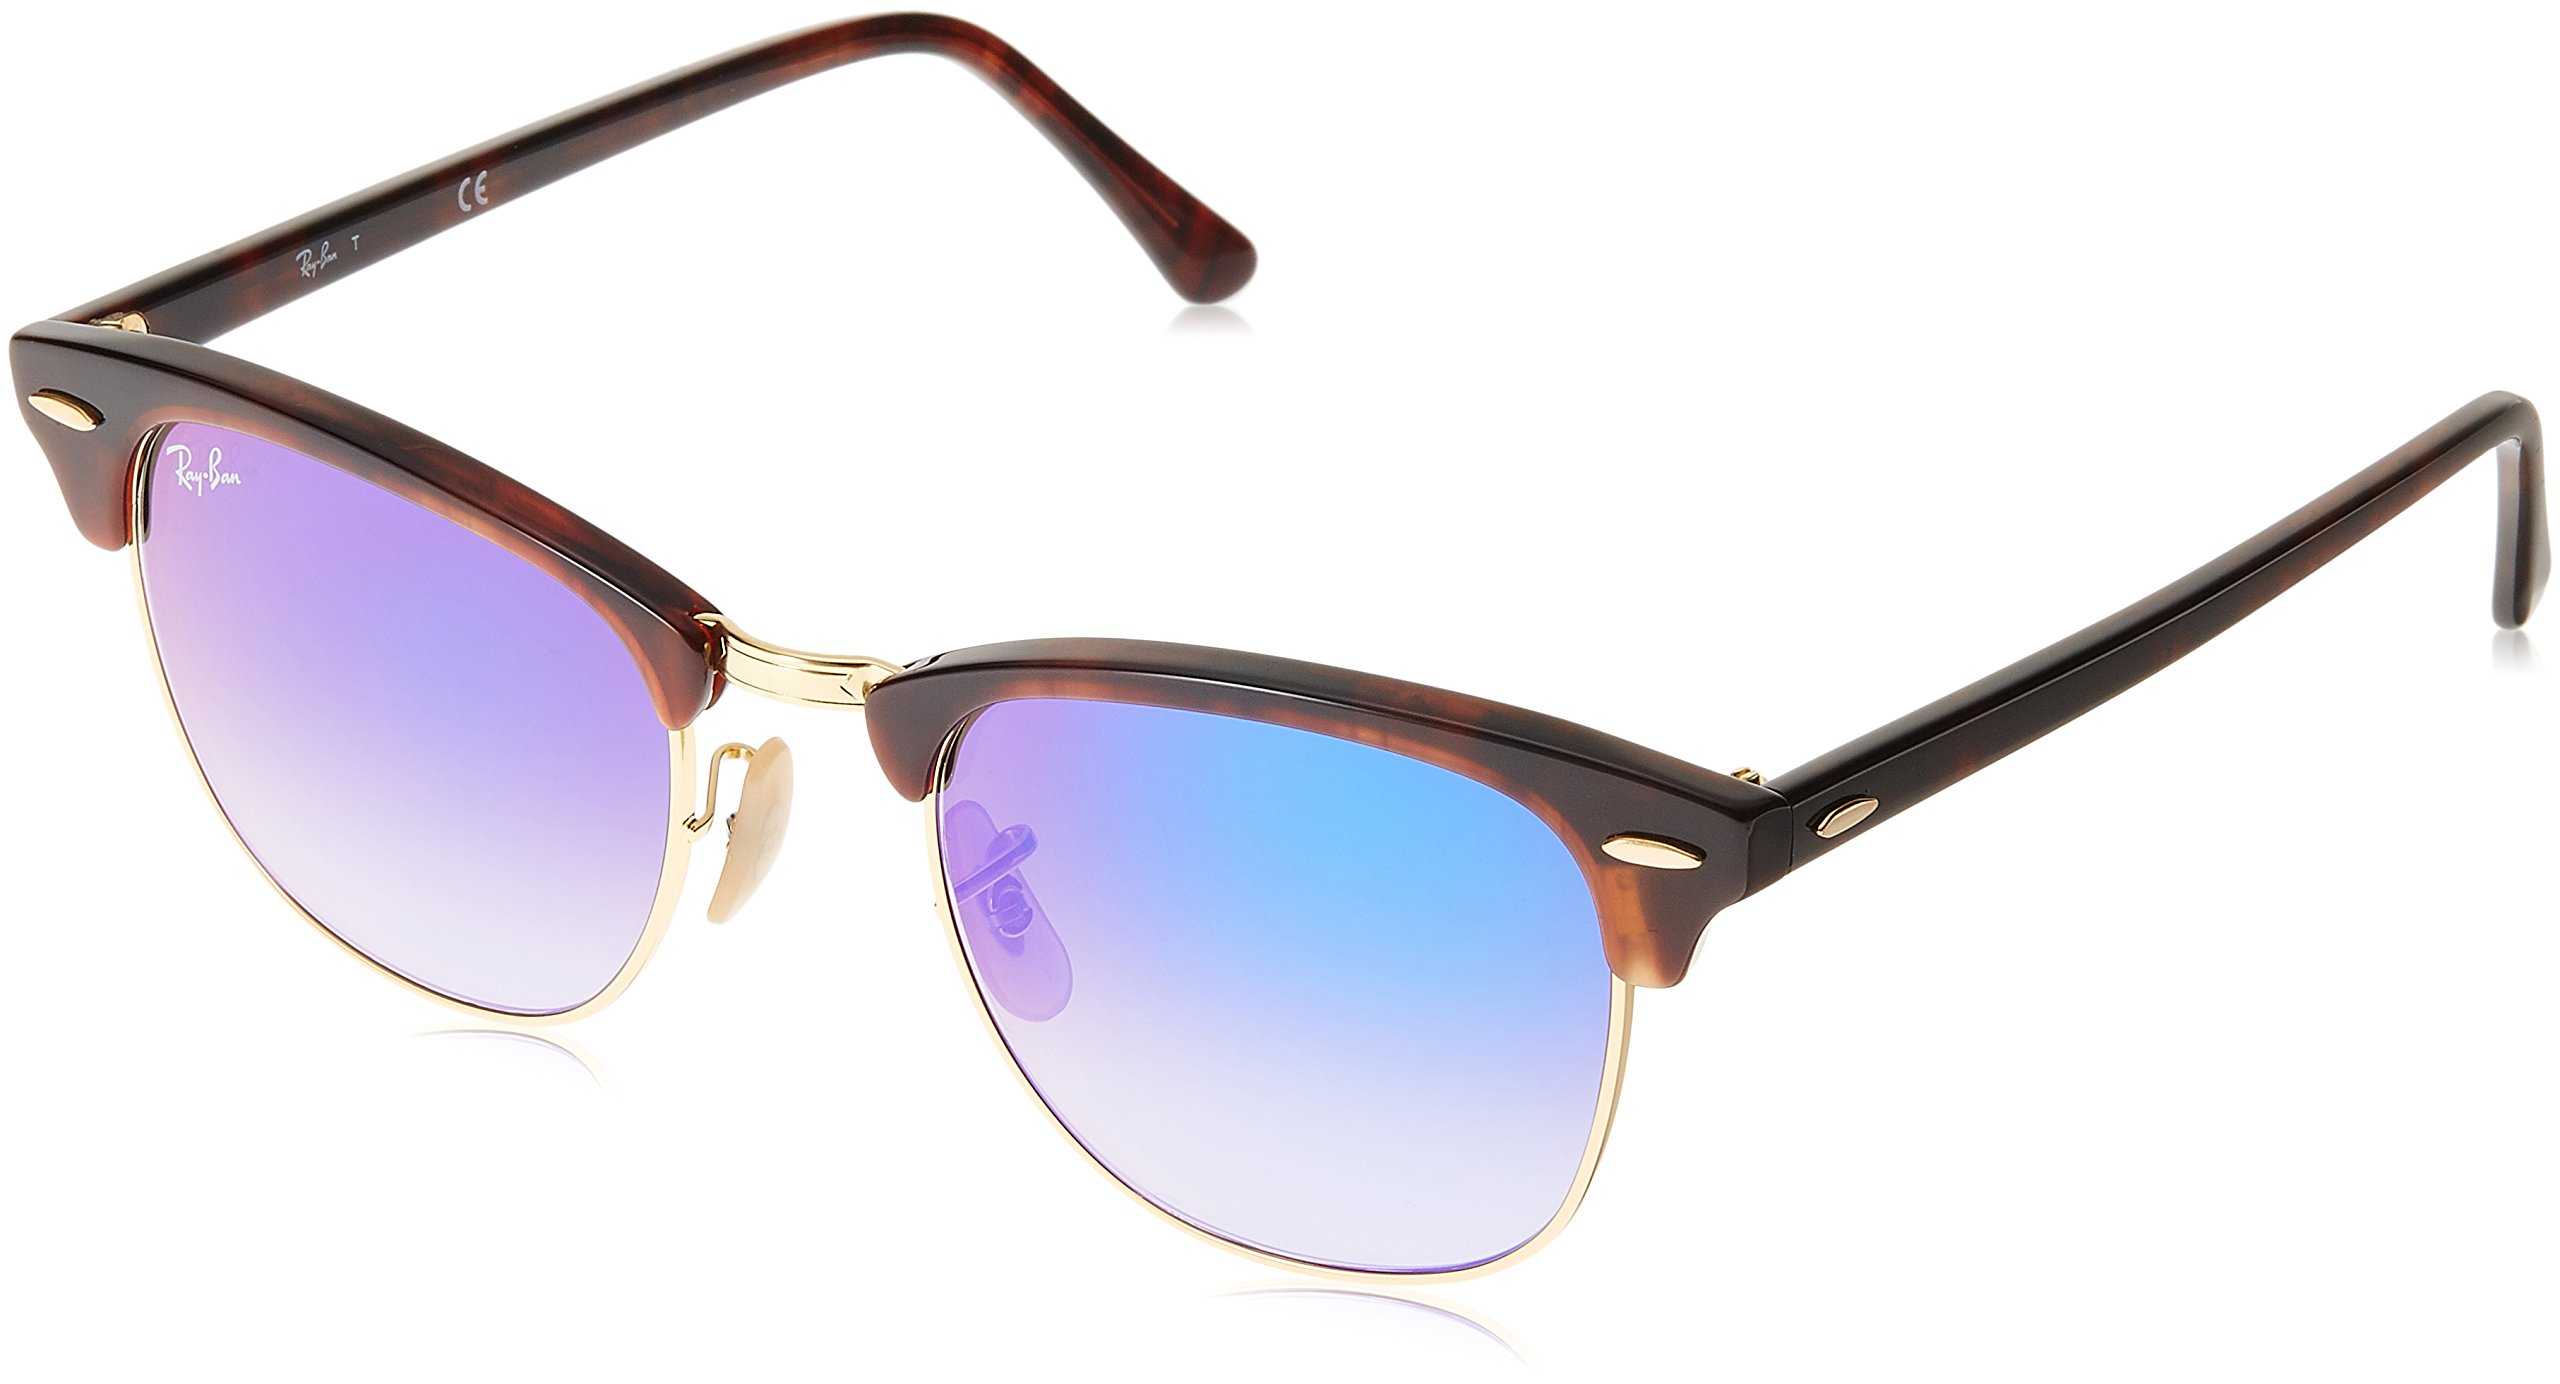 RAY-BAN RB3016 Clubmaster Square Sunglasses, Shiny Red Havana/Blue Gradient Flash, 51 mm by RAY-BAN